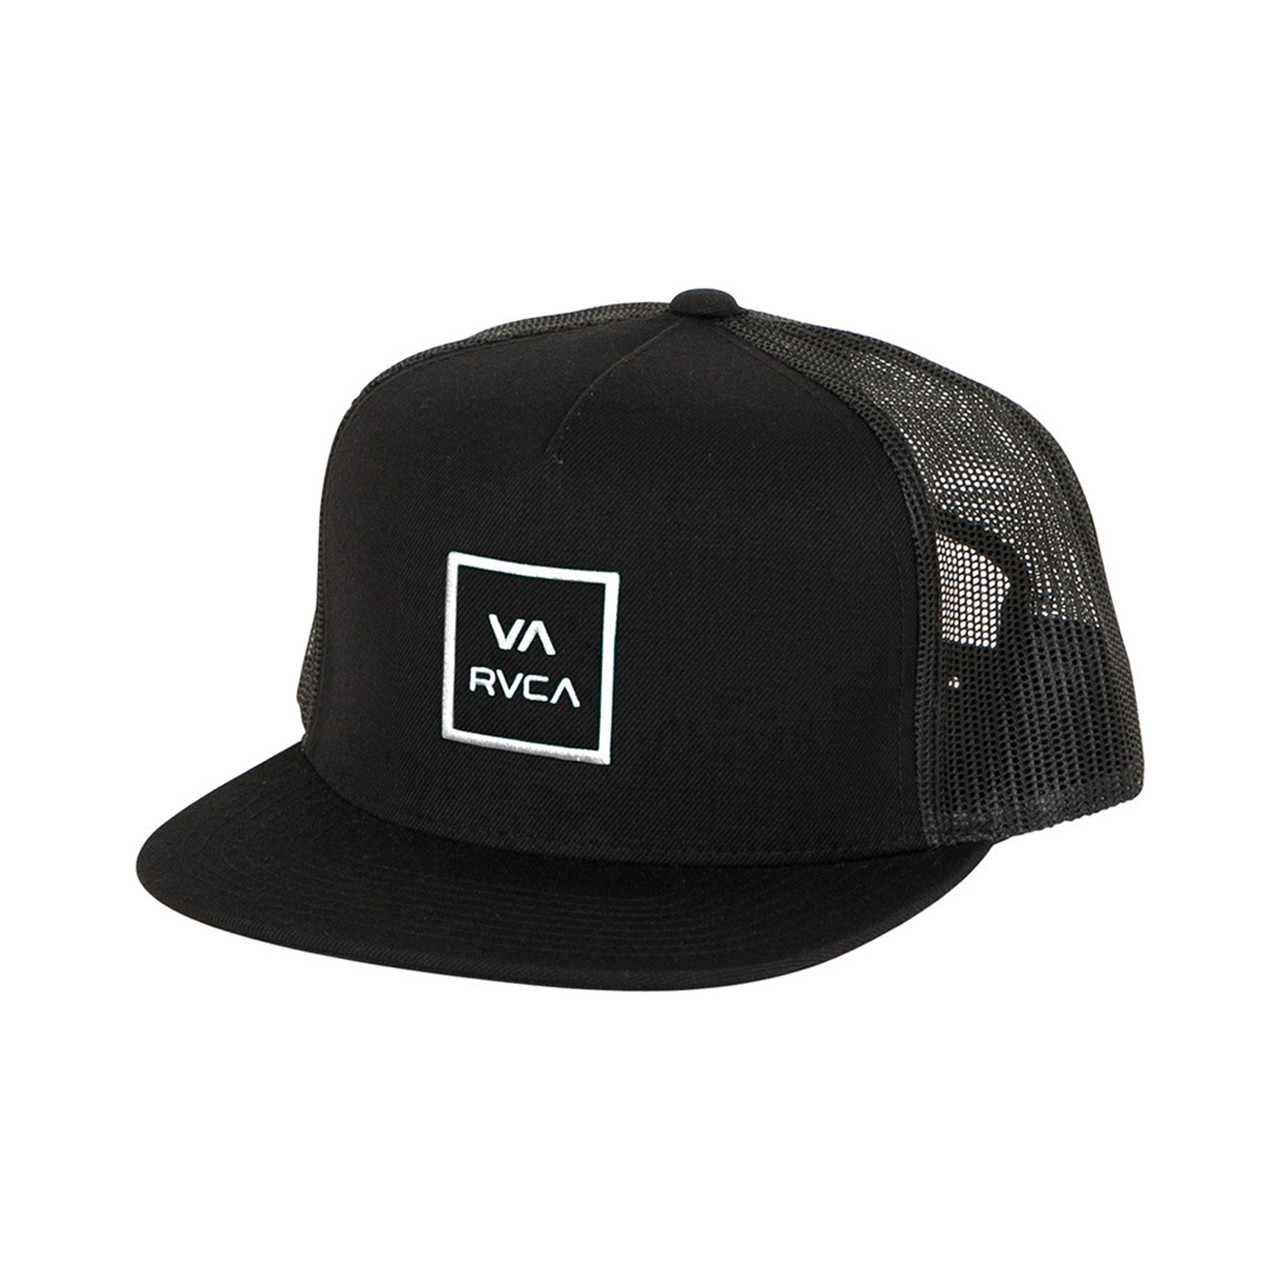 new products ded00 bf123 ... coupon code rvca kids hat va all the way trucker black surf and dirt  3da13 70c47